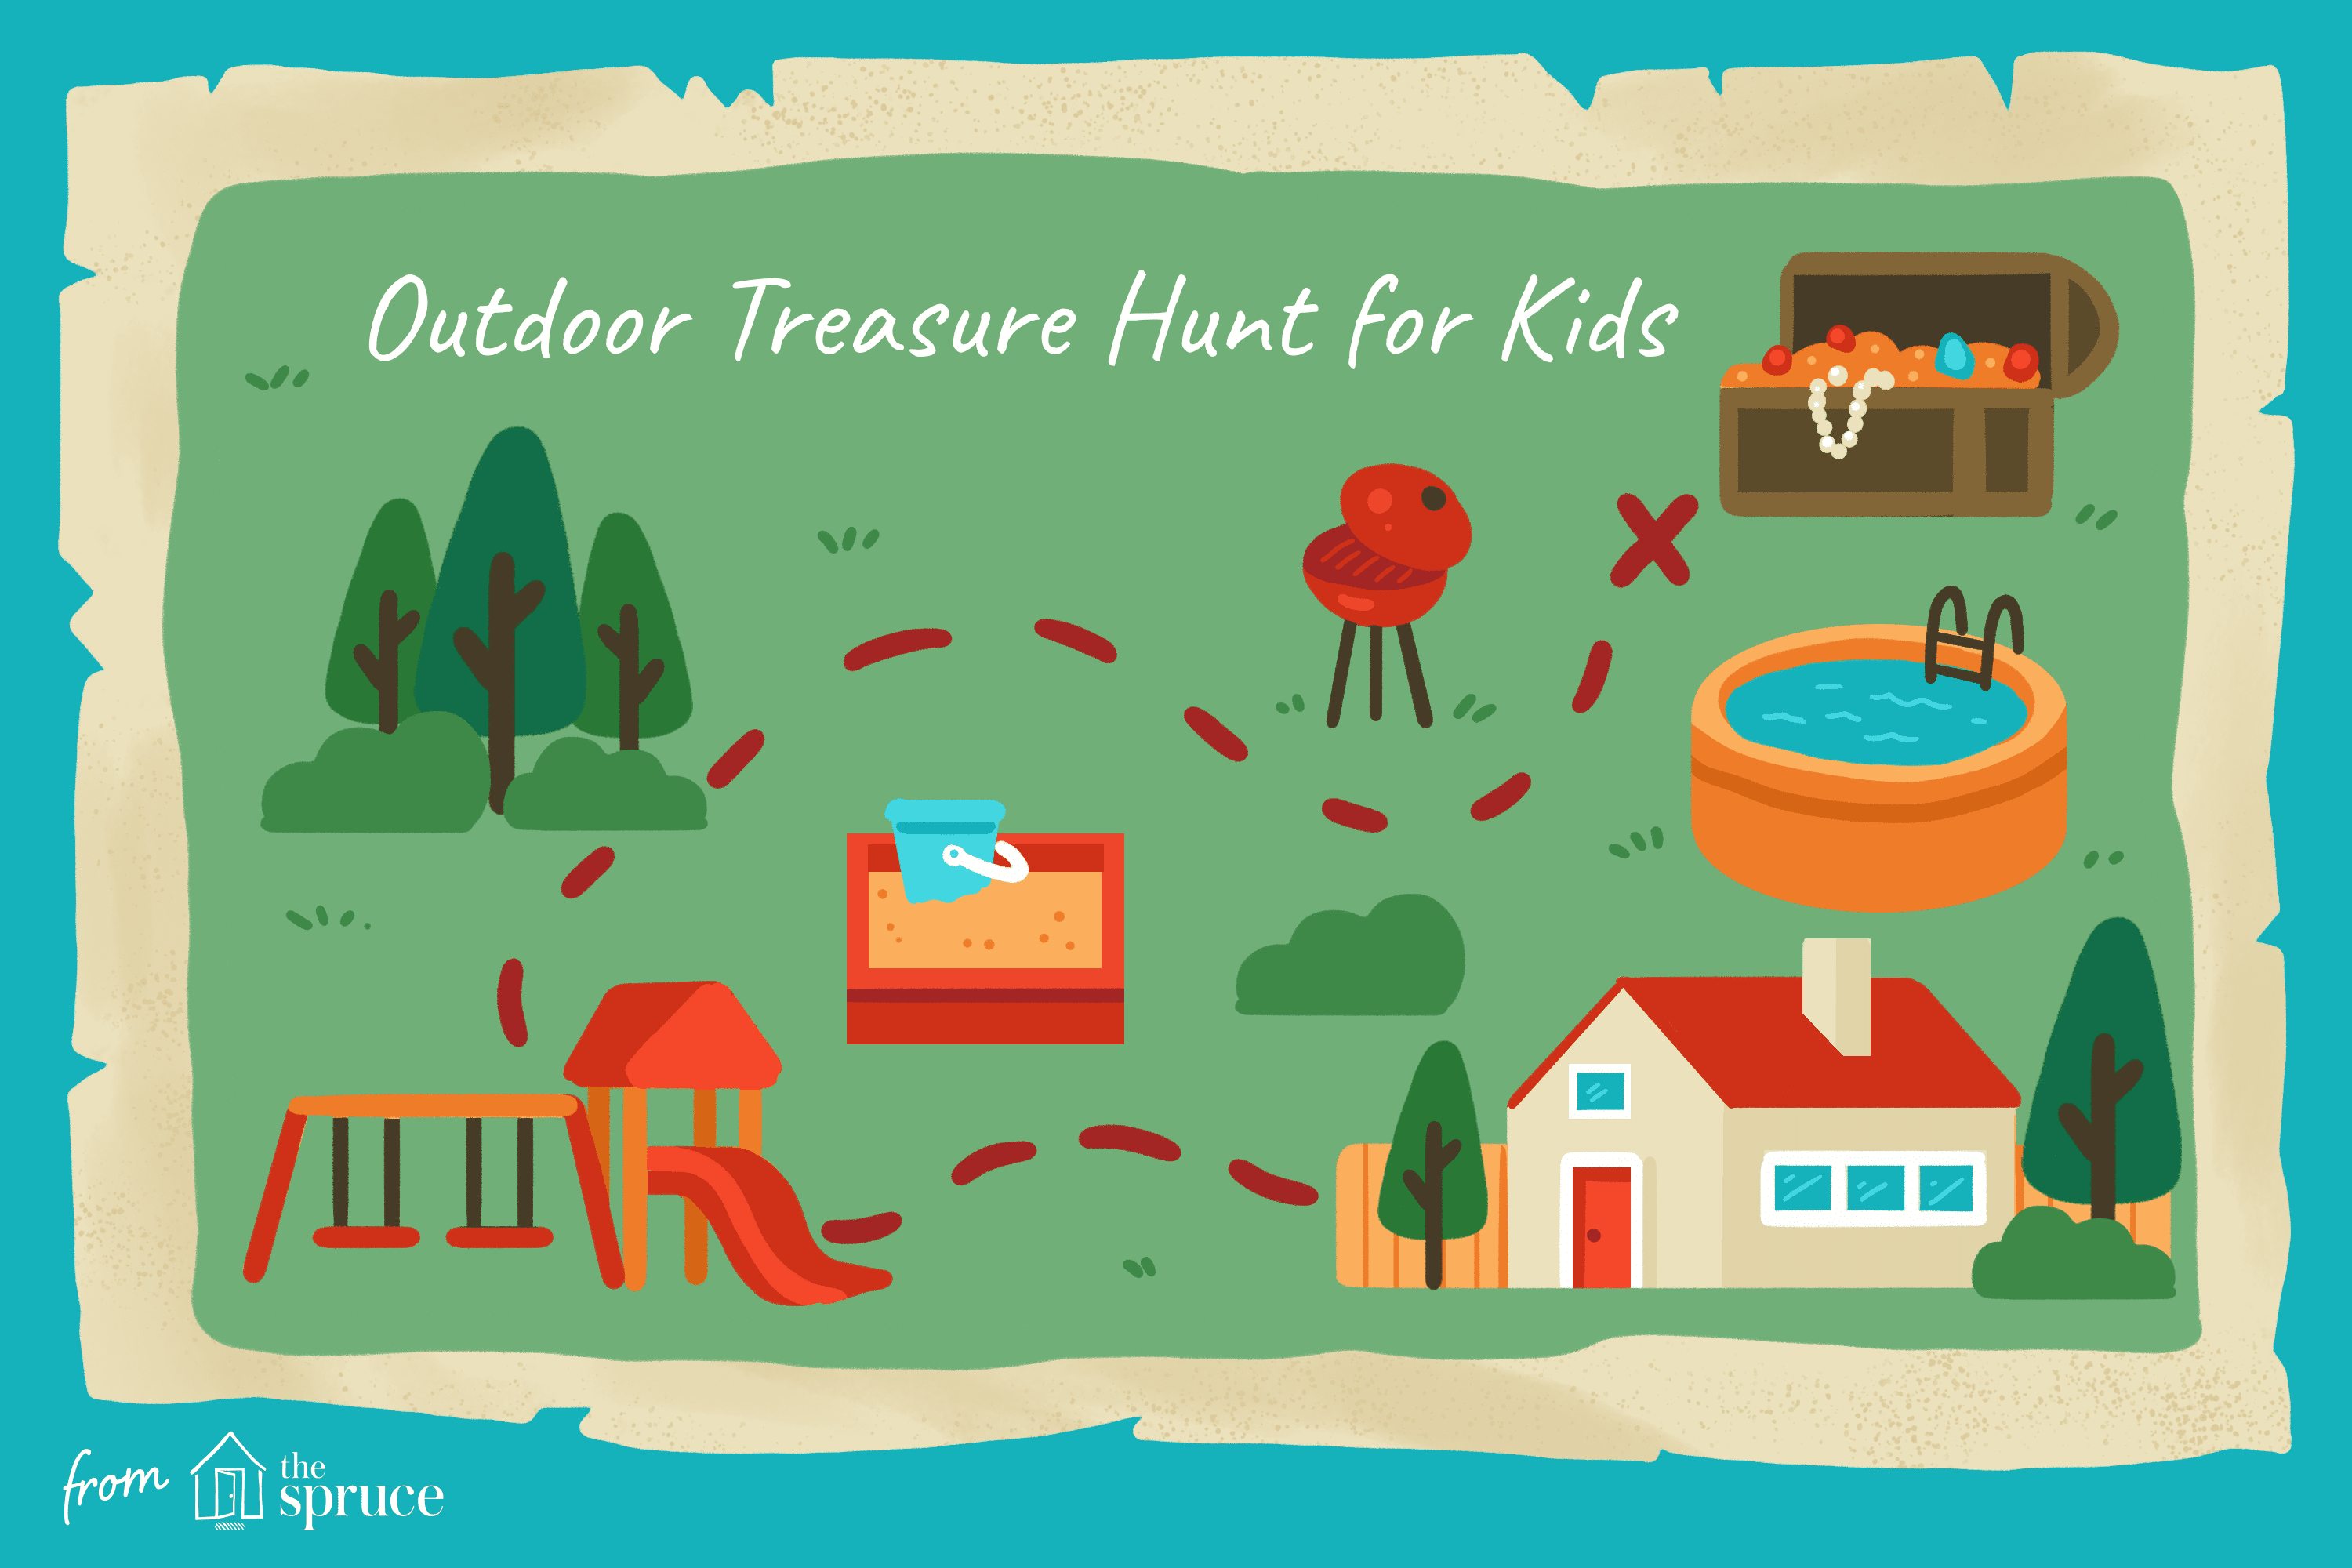 Outdoor Treasure Hunt for Kids